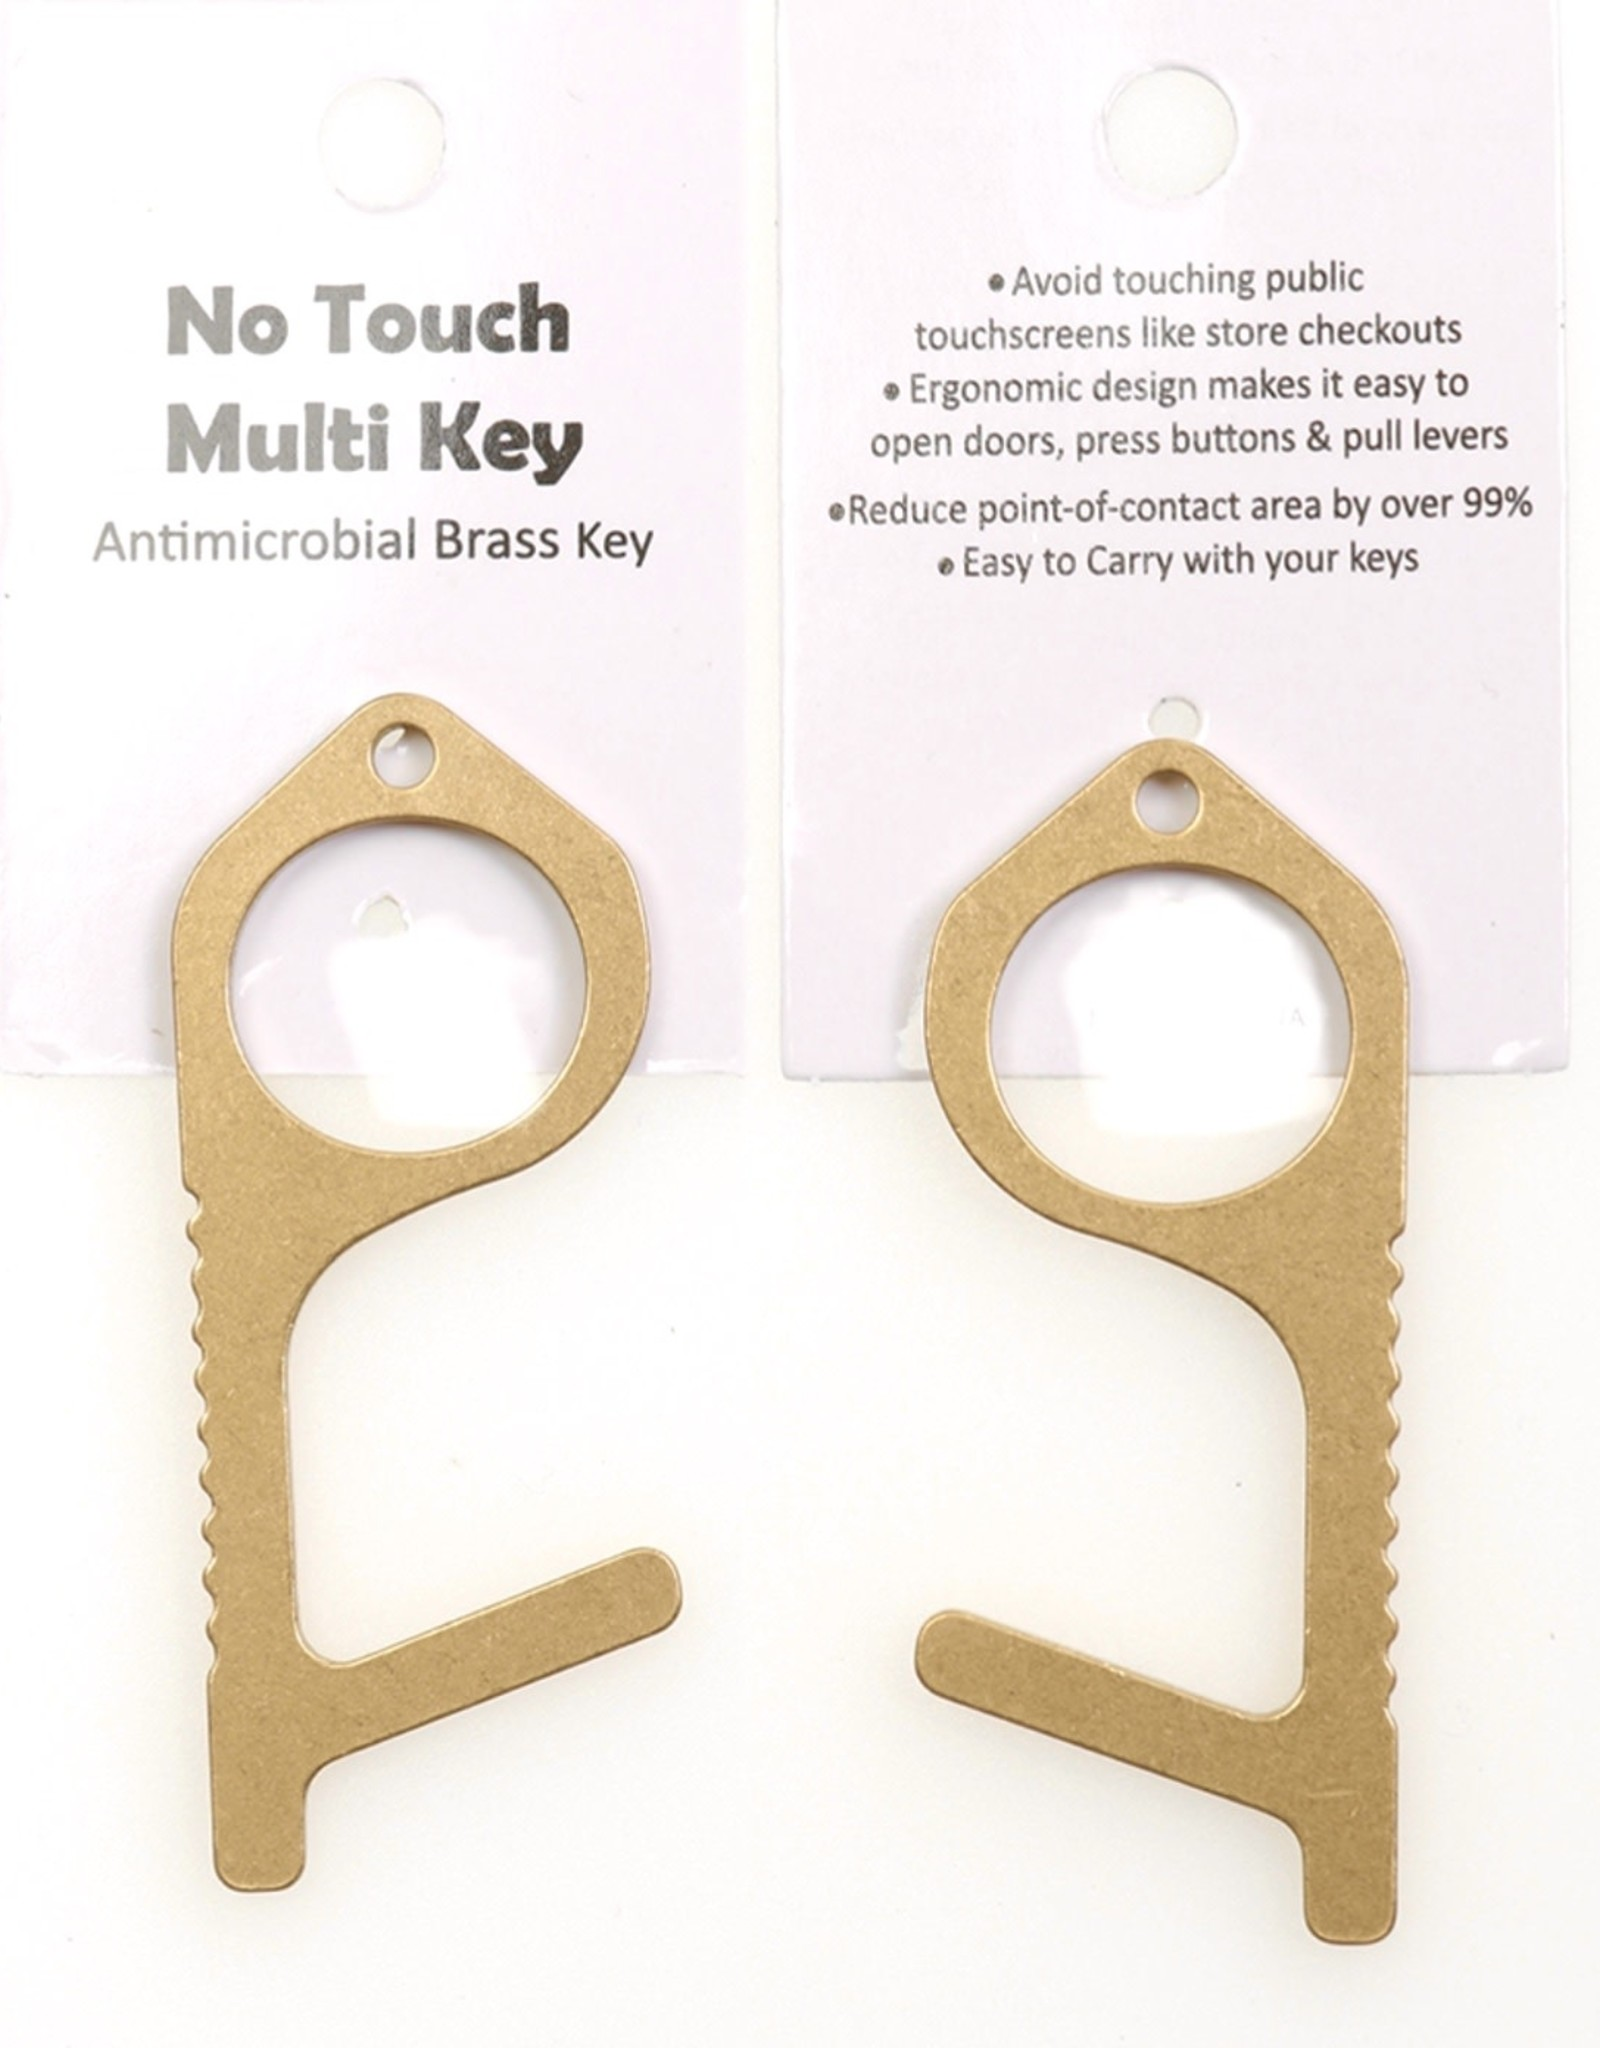 TOOL NO TOUCH MULTI KEY CHAIN  ANTIMICROBIAL BRASS KEY OPEN DOORS PUSH BUTTONS